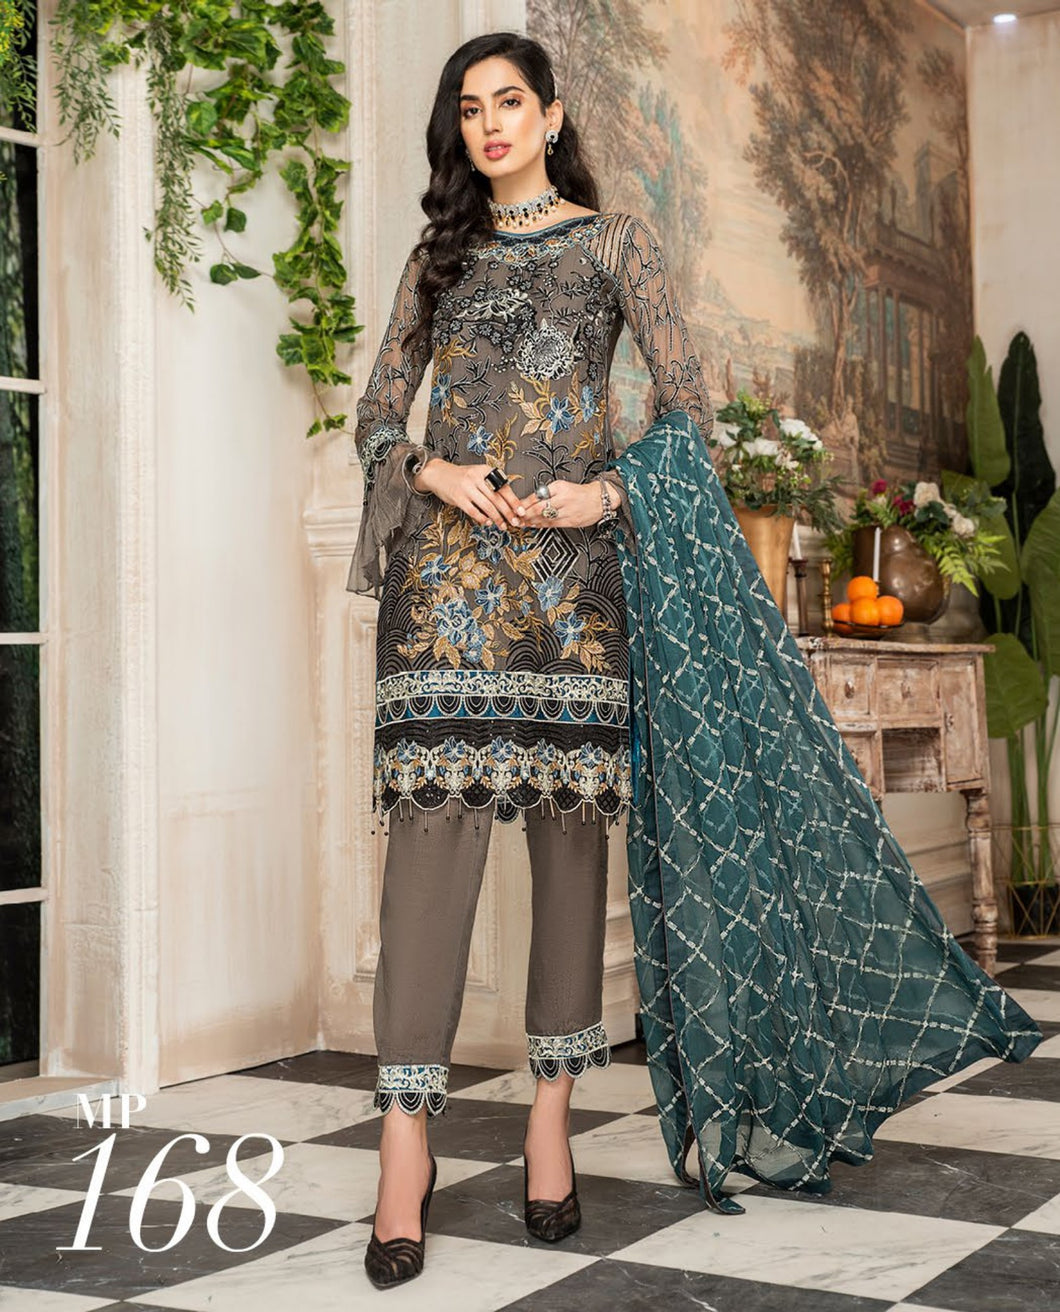 Maryam's Chiffon Eid and Wedding Collection 2020 - MP 168